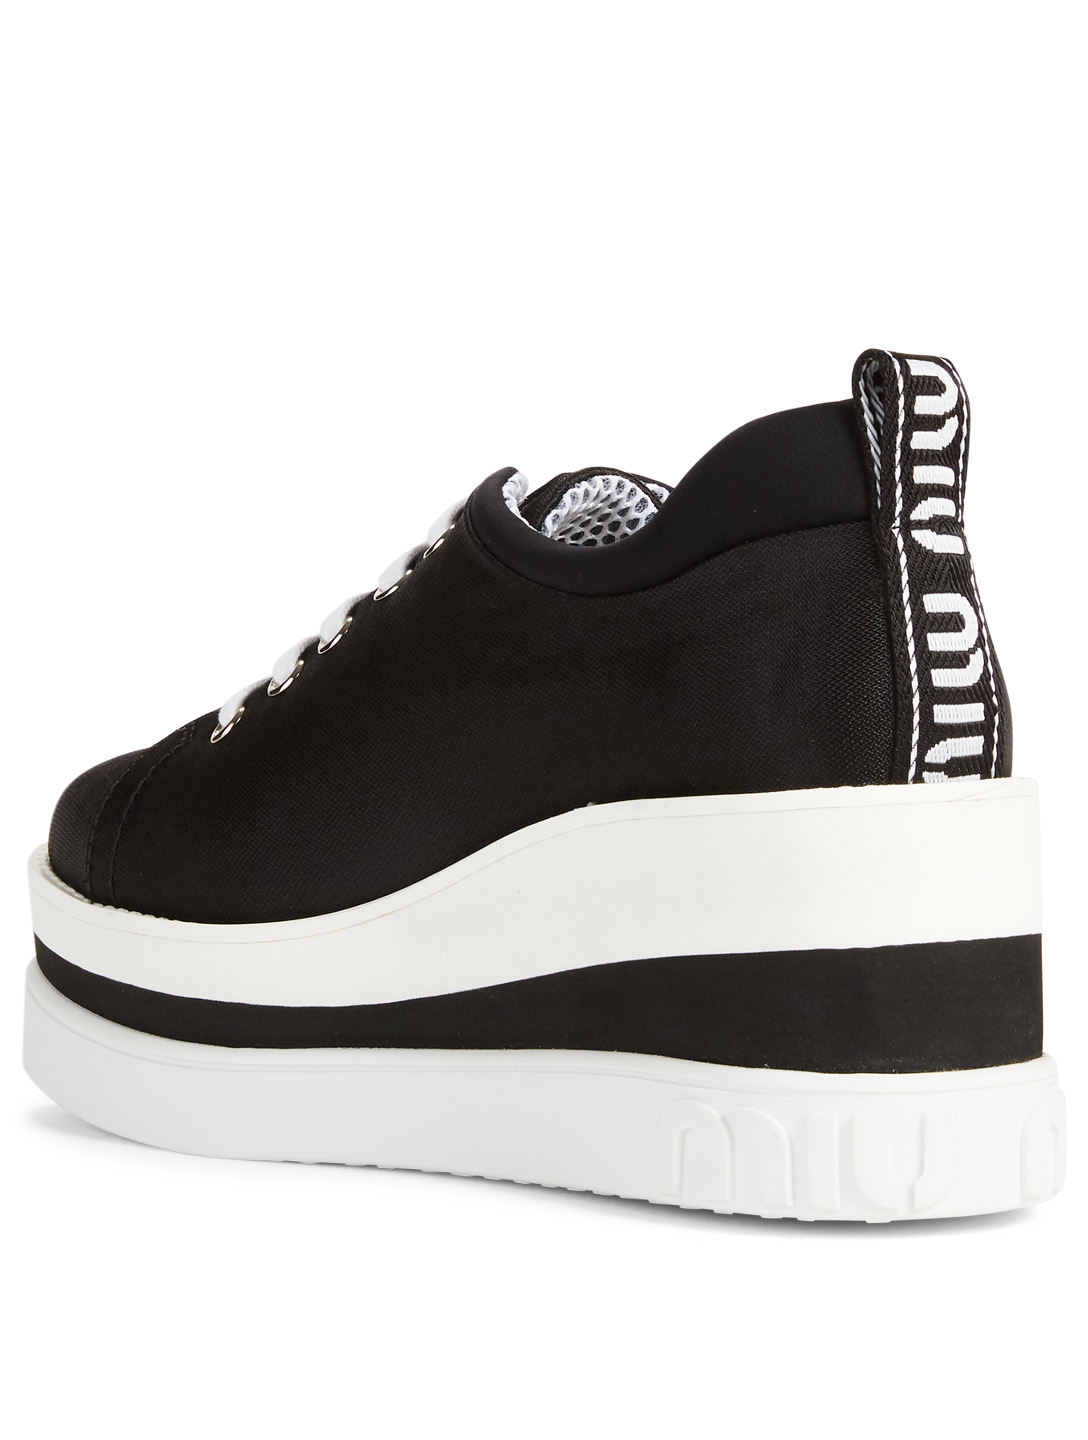 MIU MIU Nylon Platform Sneakers Womens Black